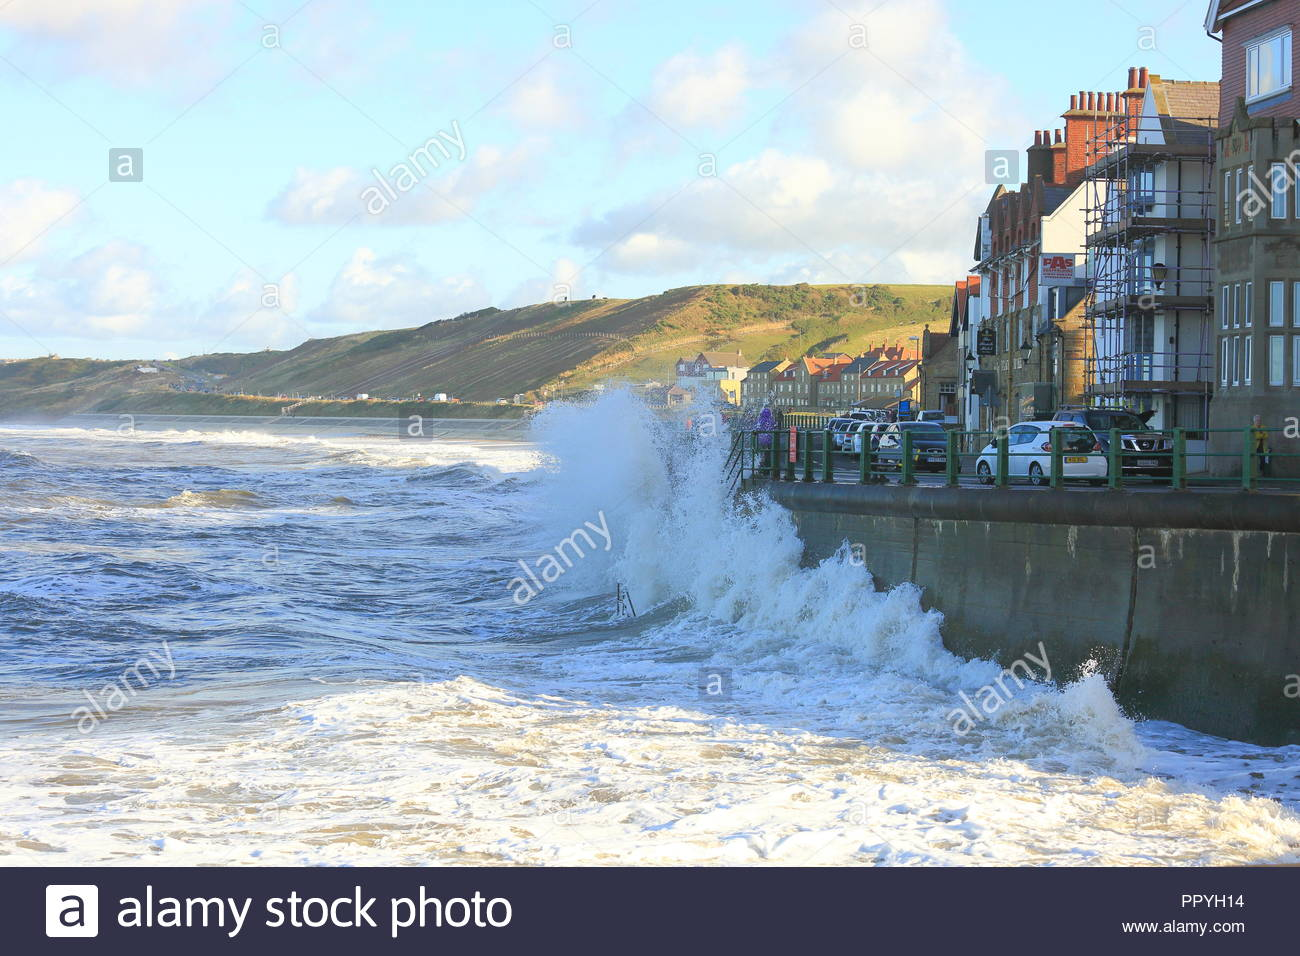 Crashing waves at the sea front at Sandsend, Whitby, North Yorkshire, UK. September 2018 - Stock Image